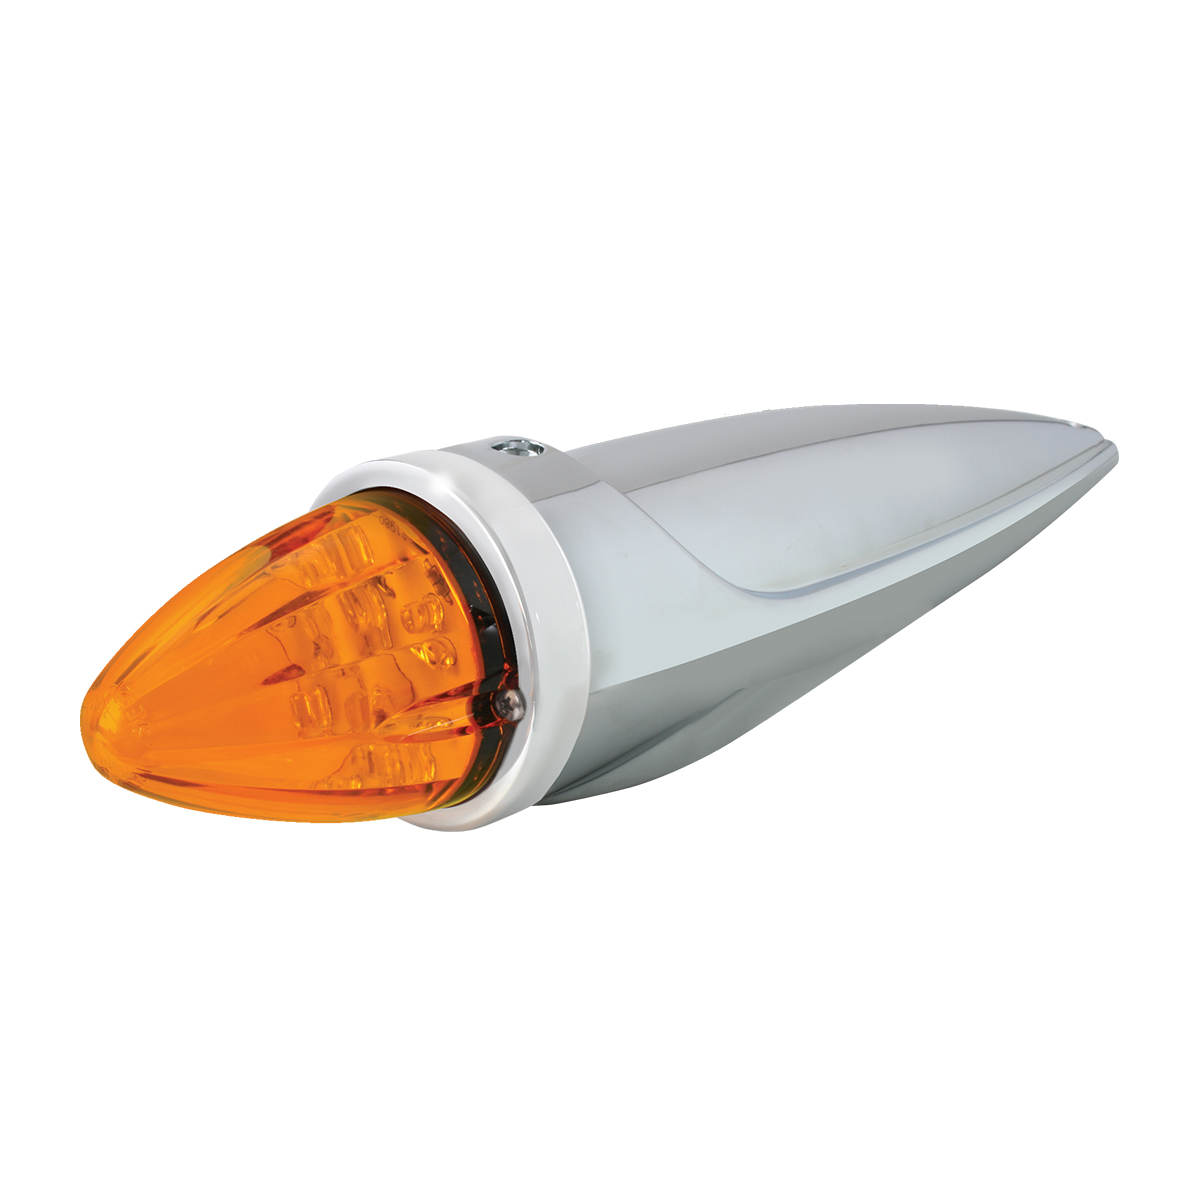 81980 Cab LED Marker Light for G1K